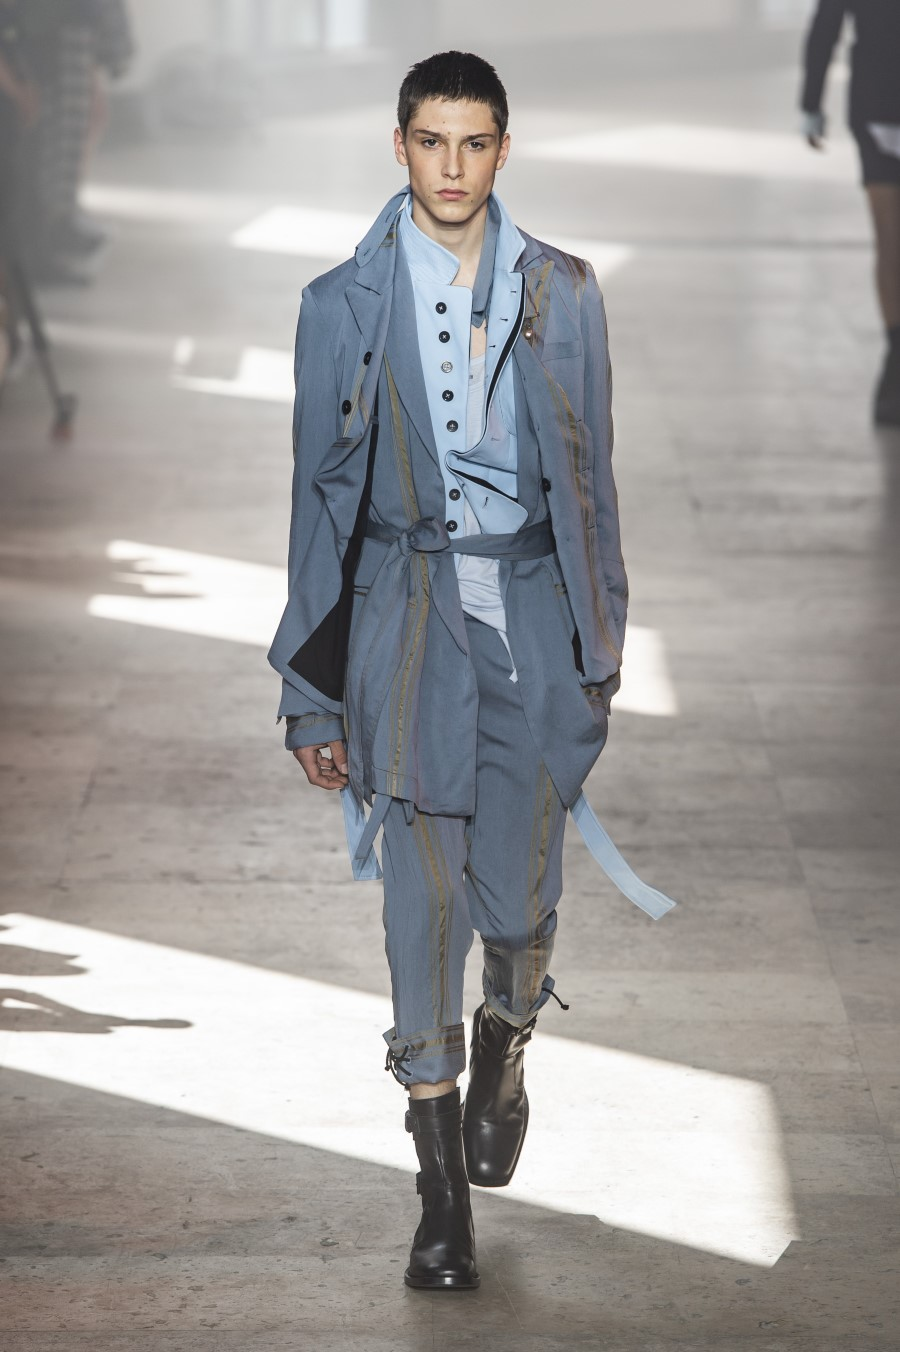 Ann Demeulemeester - Printemps-Été 2020 - Paris Fashion Week